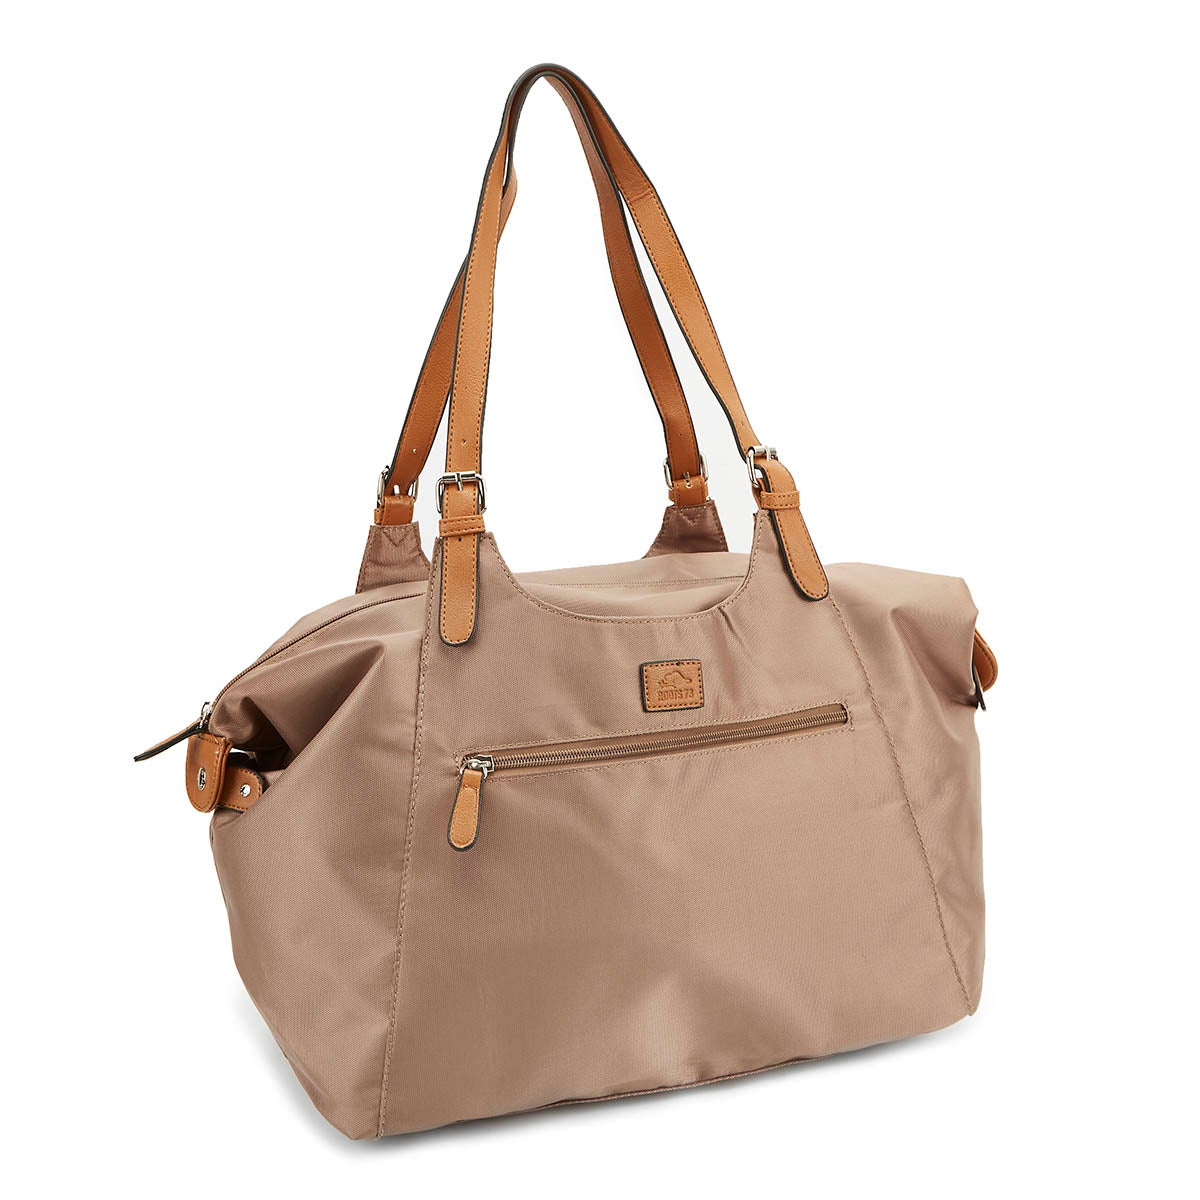 Lds Roots73 mocha nylon large tote bag